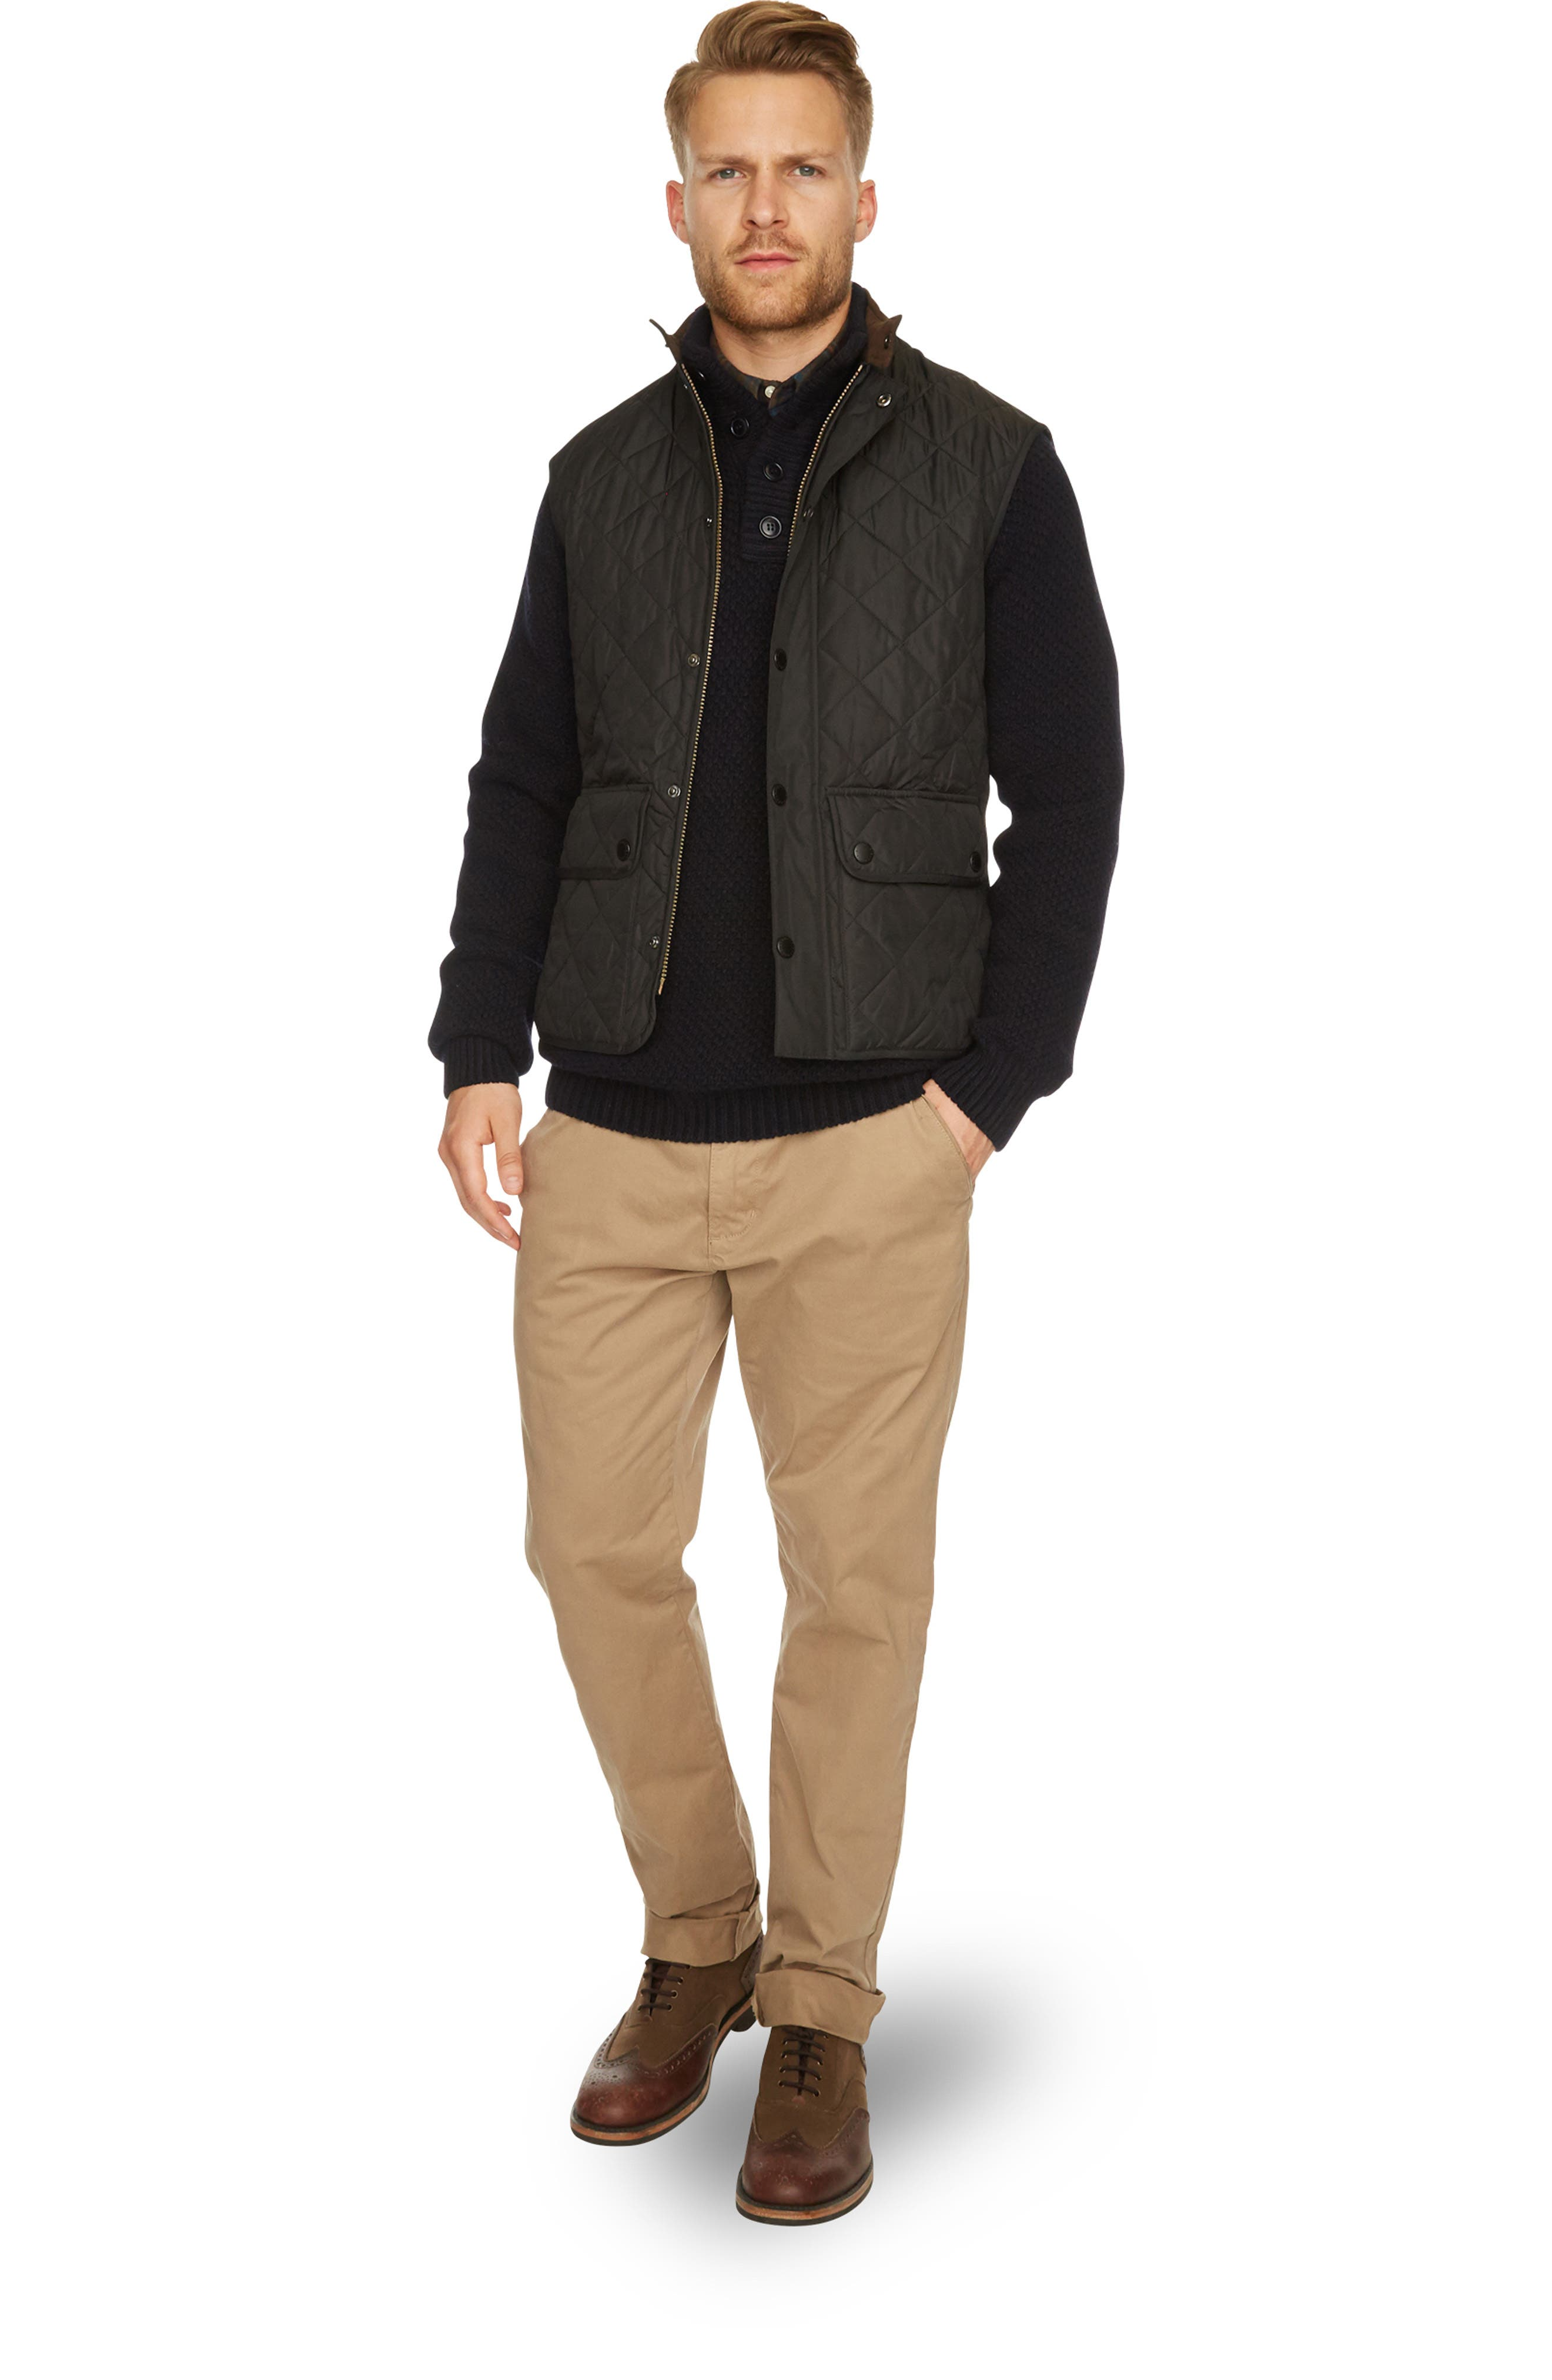 BARBOUR, Lowerdale Quilted Vest, Alternate thumbnail 4, color, 001